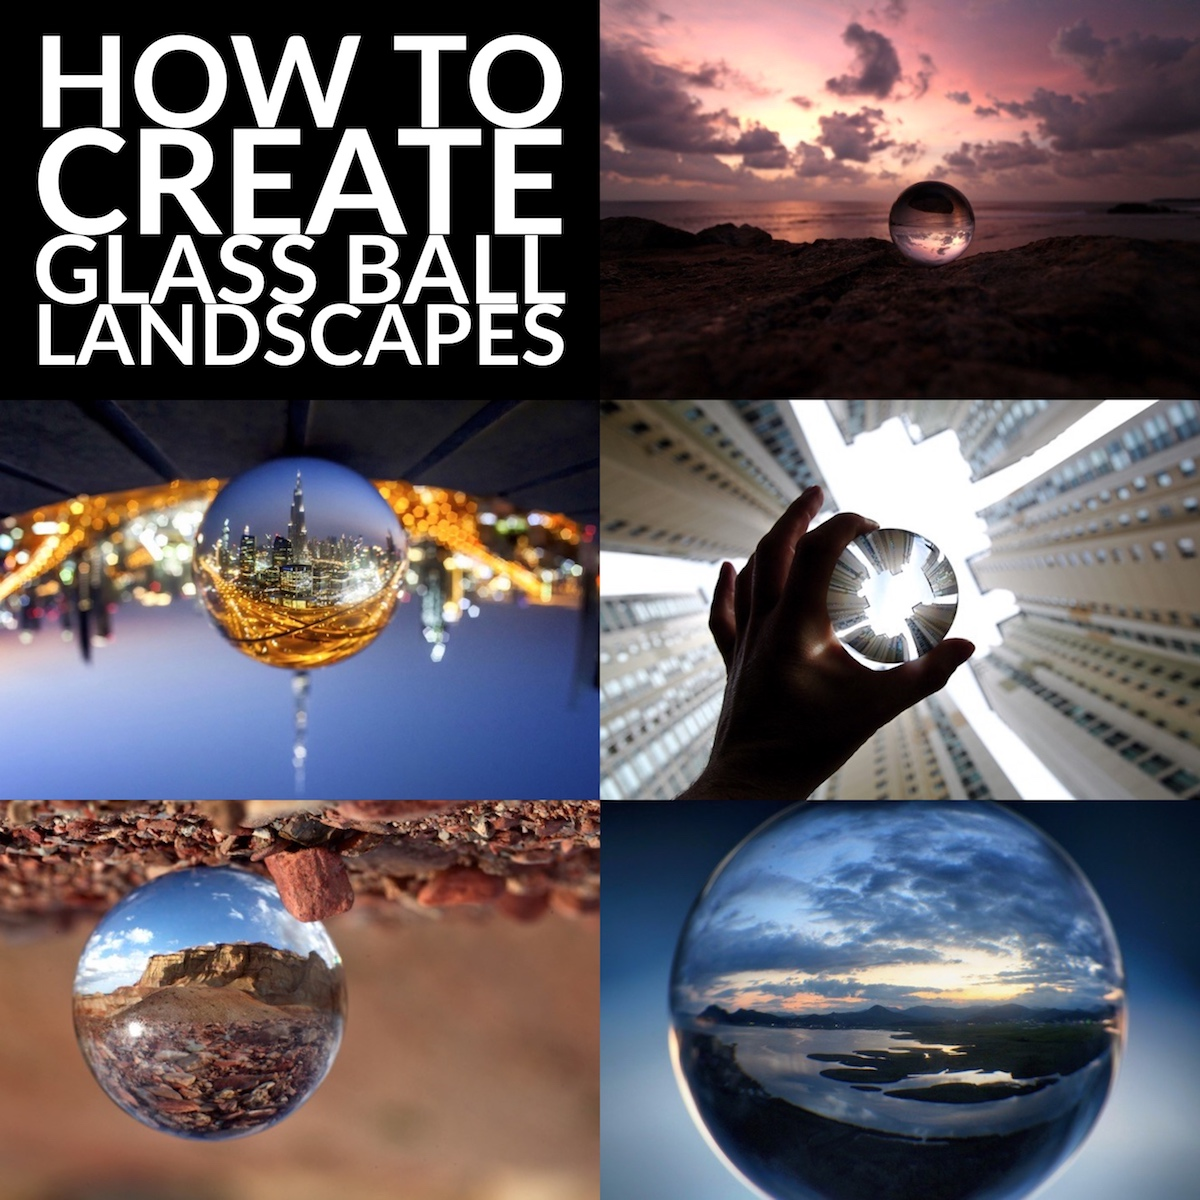 How to Create Glass Ball Landscapes - 6 Techniques